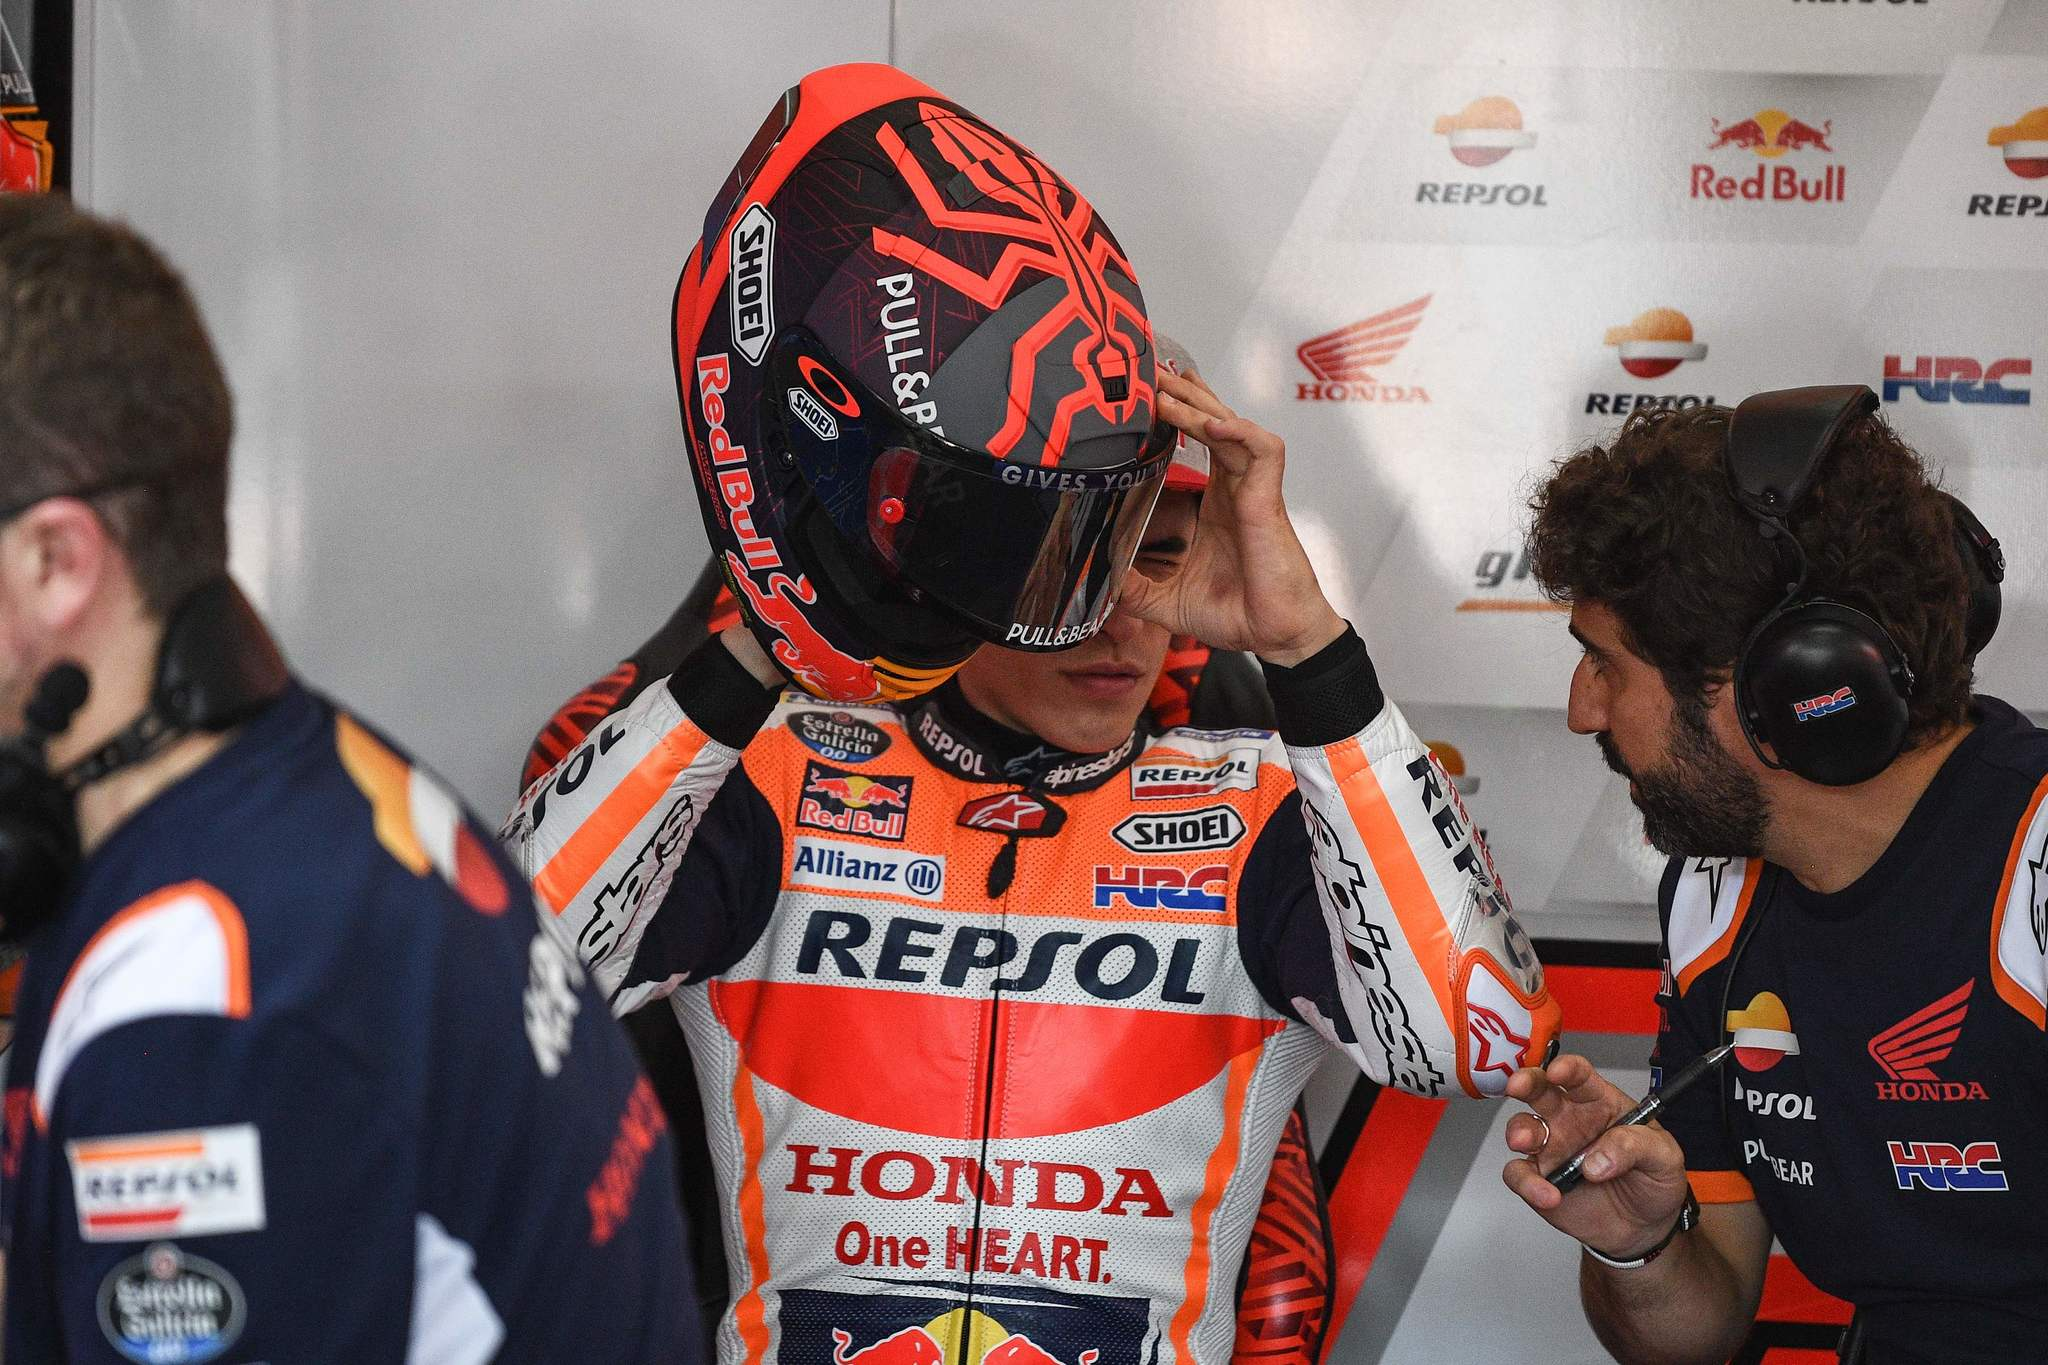 Repsol Honda Teams Spanish rider Marc lt;HIT gt;Marquez lt;/HIT gt; (C) inspects his helmet during the first day of the pre-season MotoGP winter test at the Sepang International Circuit in Sepang on February 7, 2020. (Photo by Mohd RASFAN / AFP)